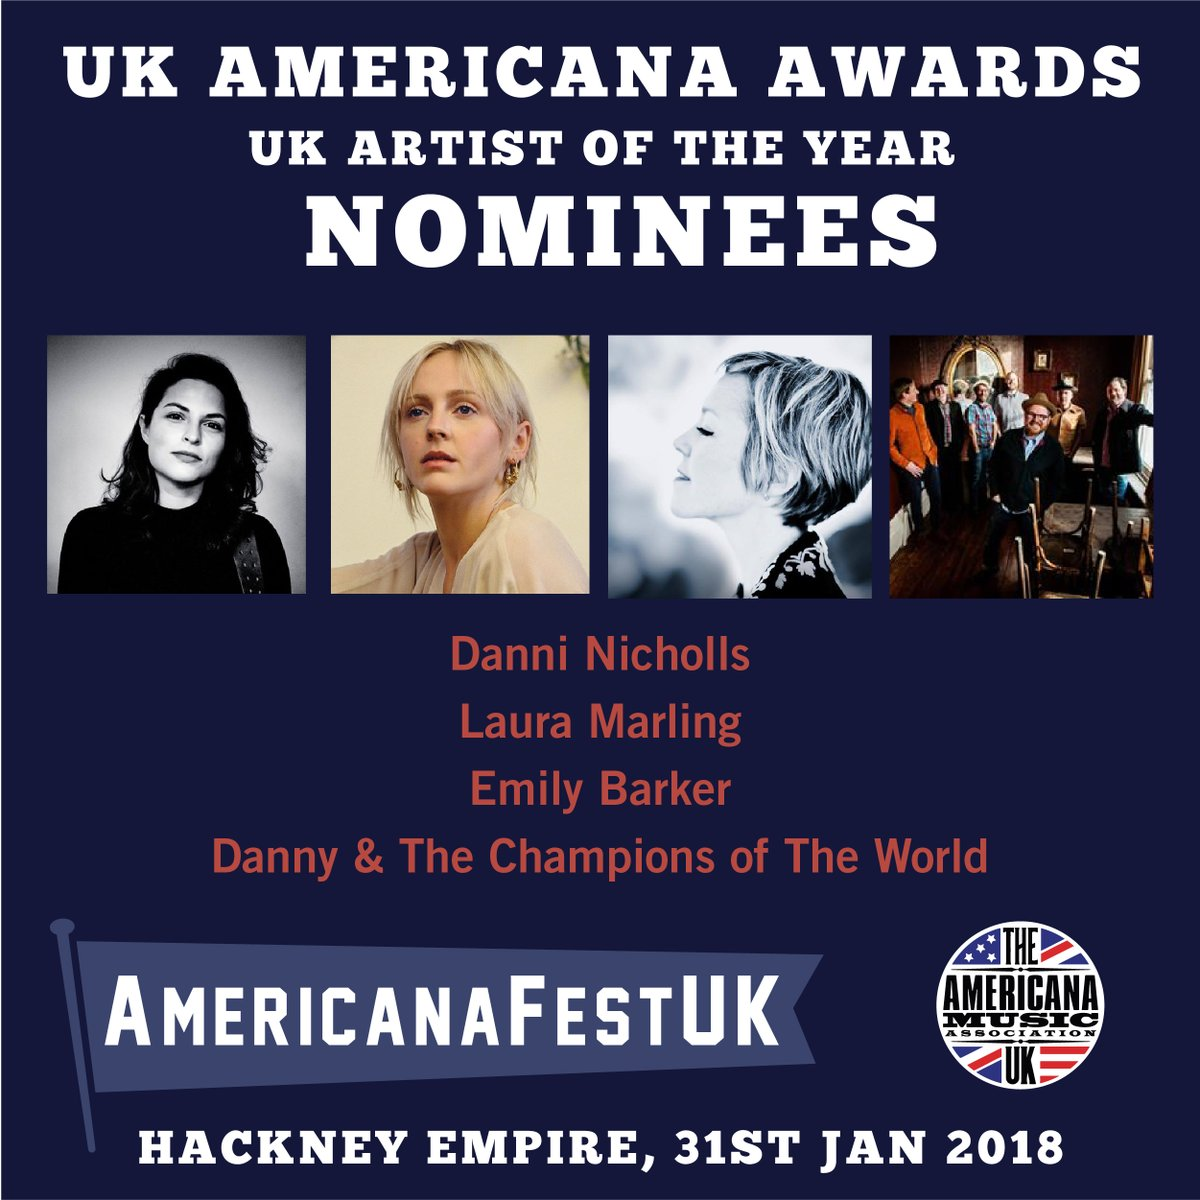 AMA UK 2018 Artist of the Year Nominees